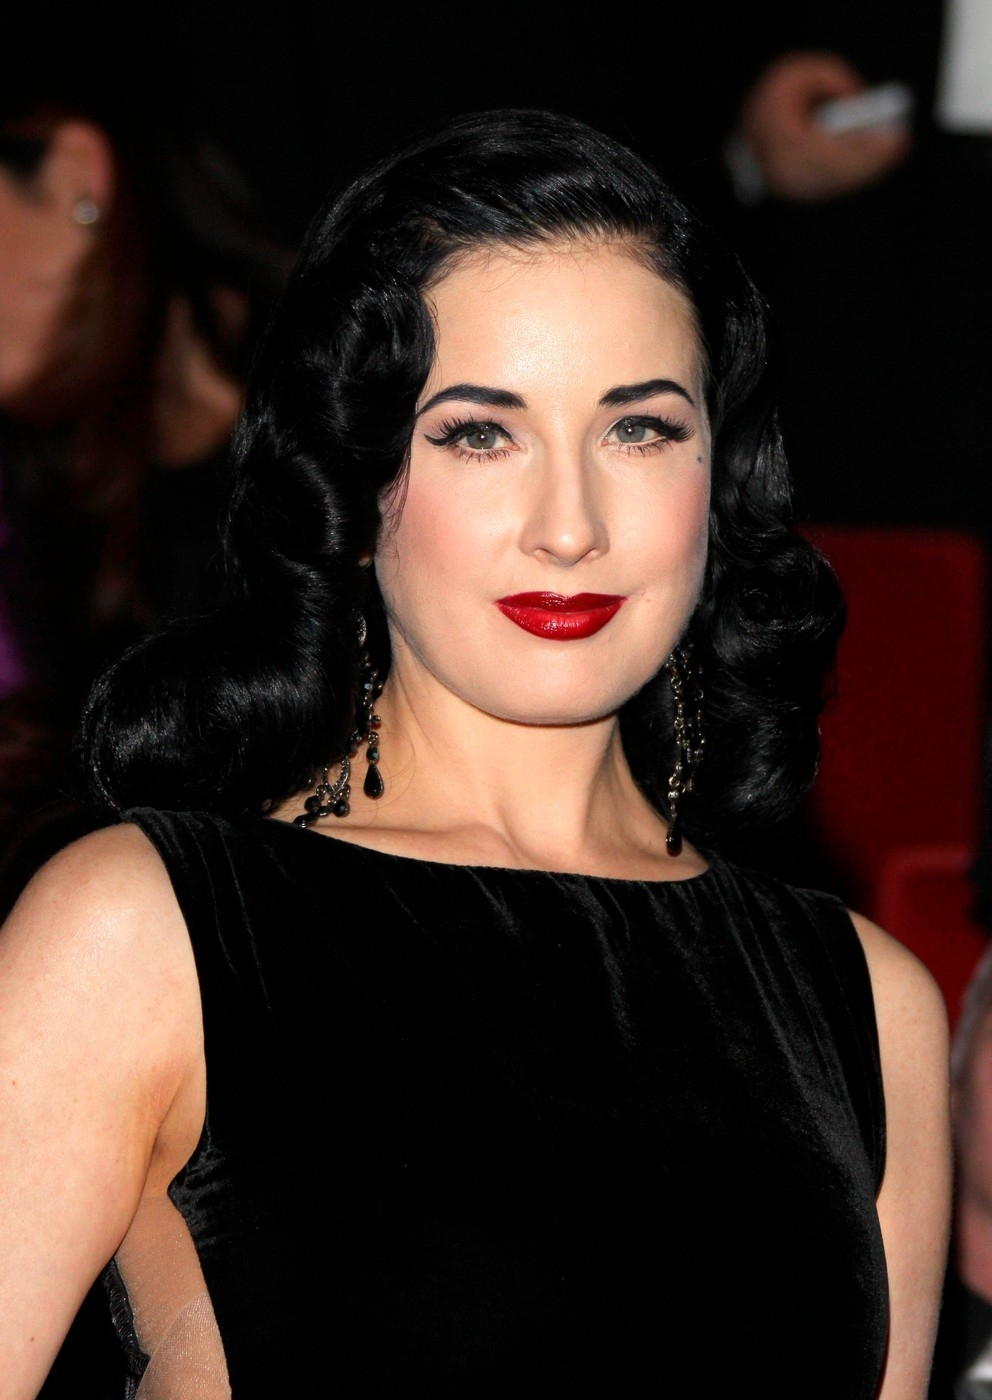 DITA VON TEESE attends the premiere of ''The Phantom of the Opera'' in Hamburg